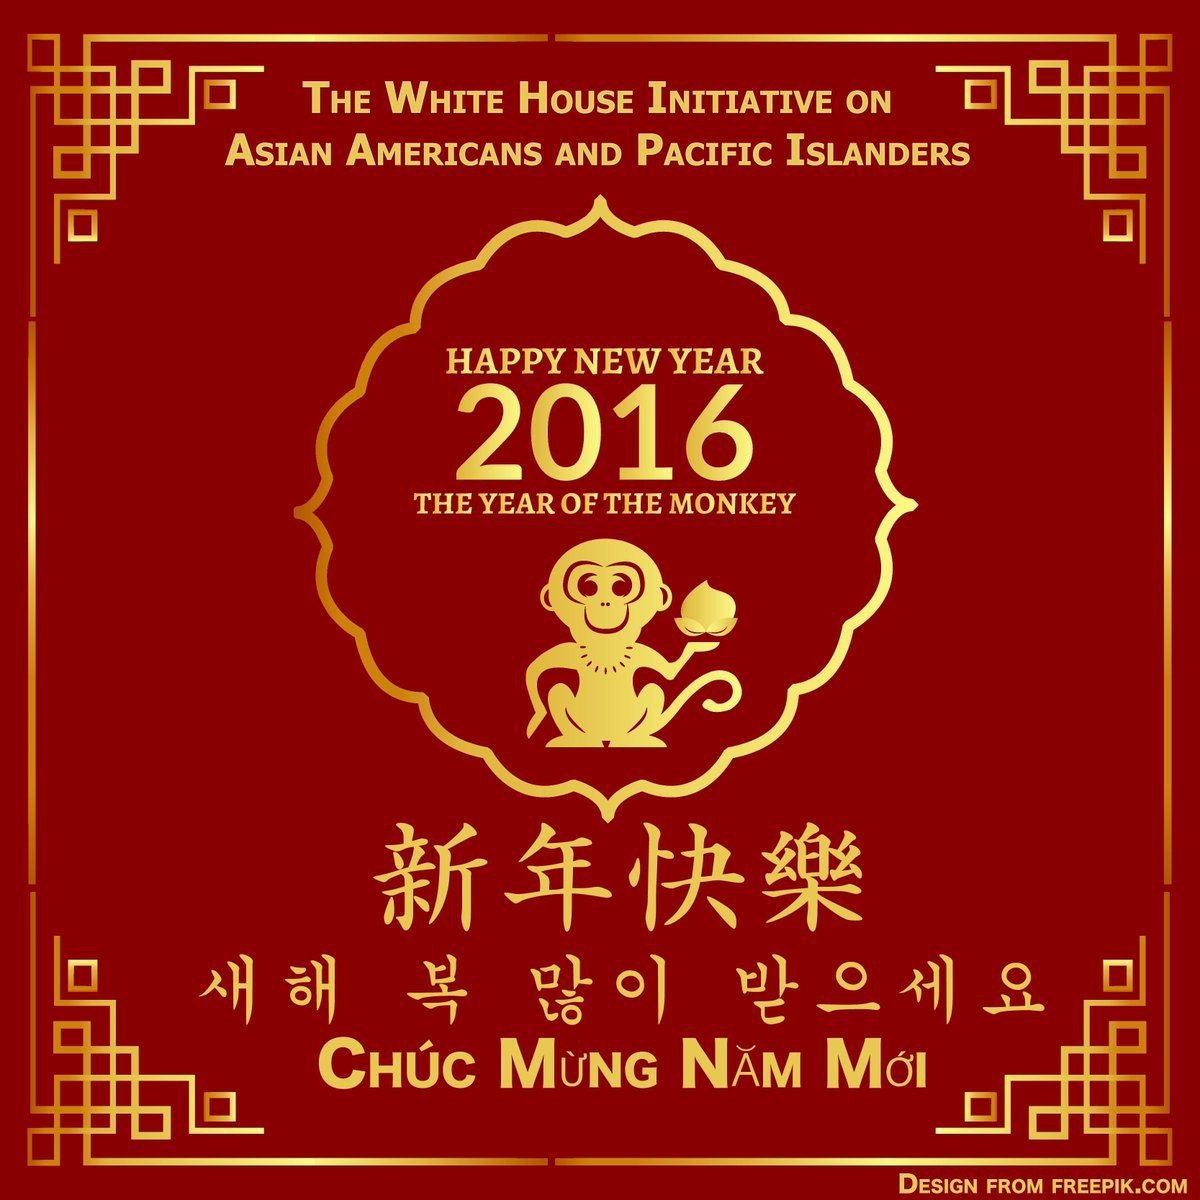 Happy Lunar New Year!  新年快樂 Chúc Mừng Năm Mới 새해 복 많이 받으세요 https://t.co/FQc8whCPmF